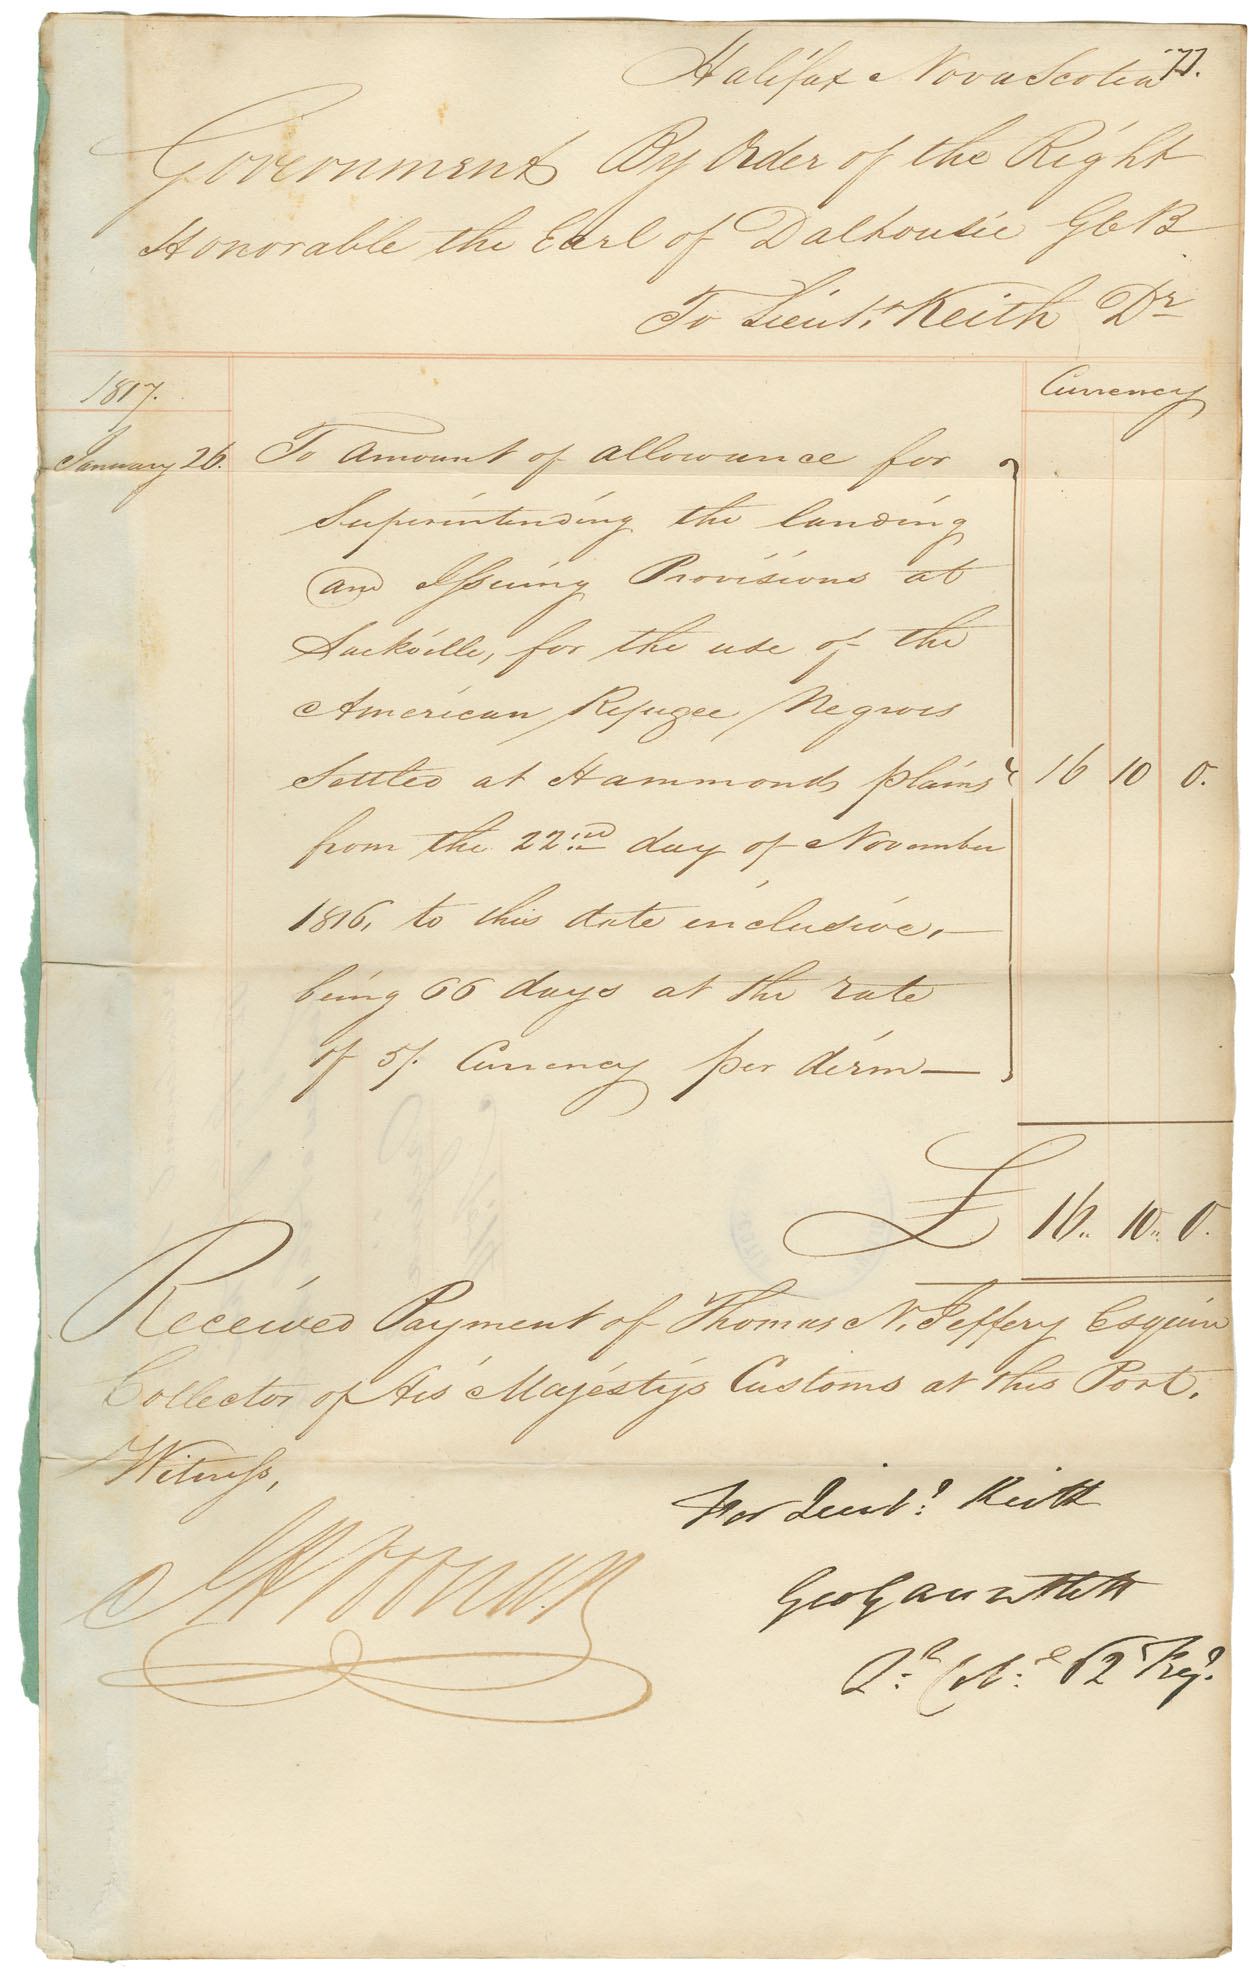 african-heritage : Accounts against Government for Black Refugees up to 26 December 1816, with the following suppliers: Seth Coleman, Theophilus Chamberlain, J